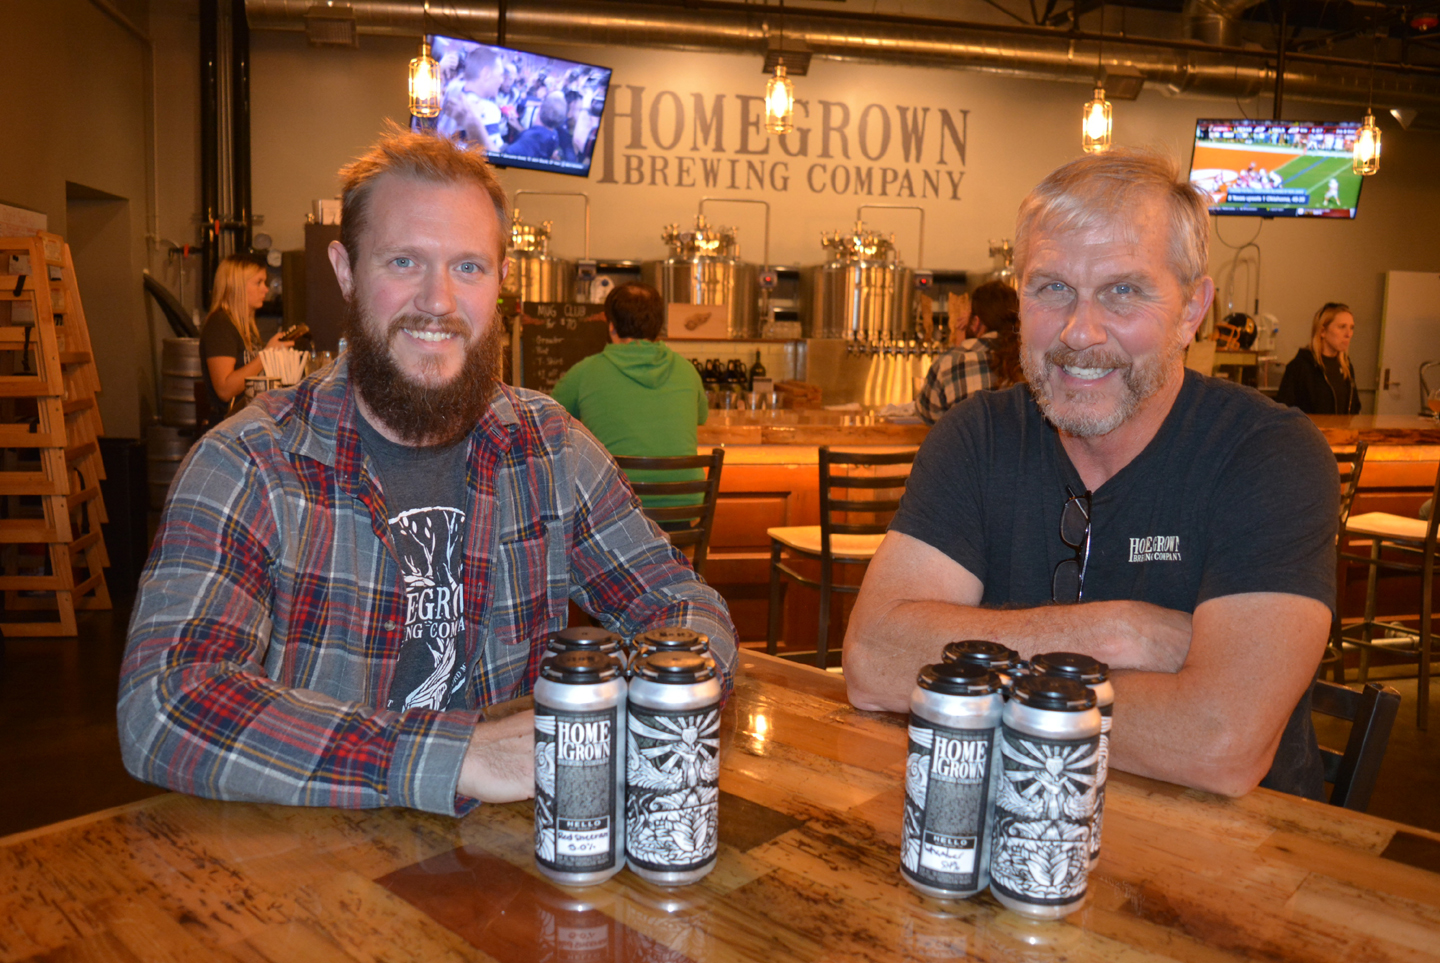 John Powers (right), co-owner of HomeGrown Brewing Company, and Head Brewer Joe Powers are excited to offer seven of their beers in four-packs of 16-ounce cans. Photo by C.J. Carnacchio.